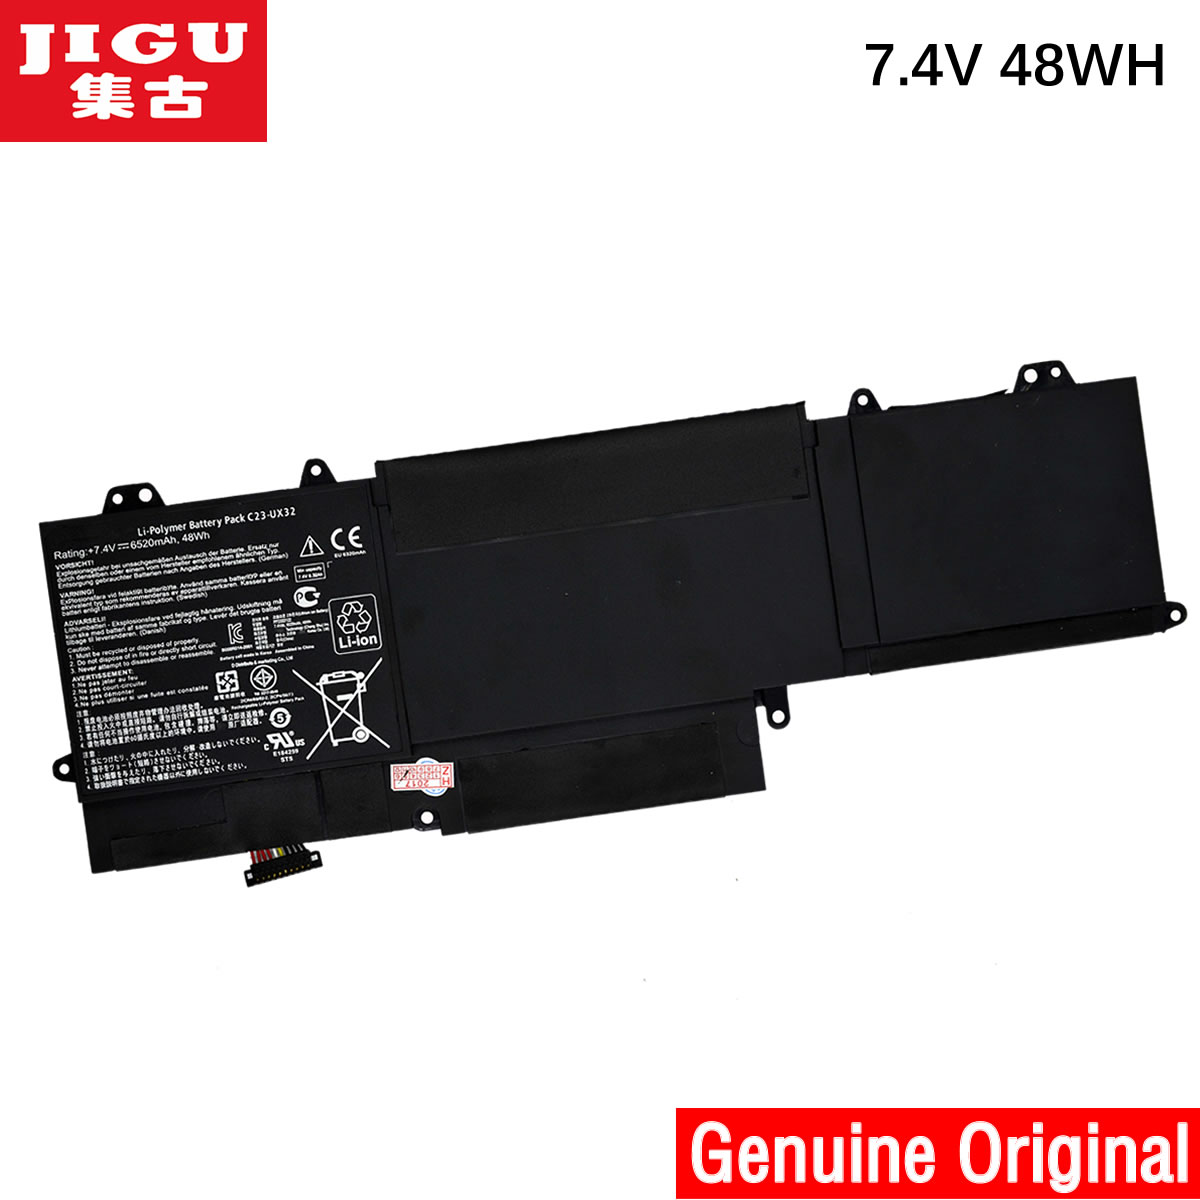 все цены на JIGU C23-UX32 Original laptop Battery For Asus VivoBook U38N U38K U38DT for Zenbook UX32 UX32VD UX32LA 7.4V 48WH онлайн